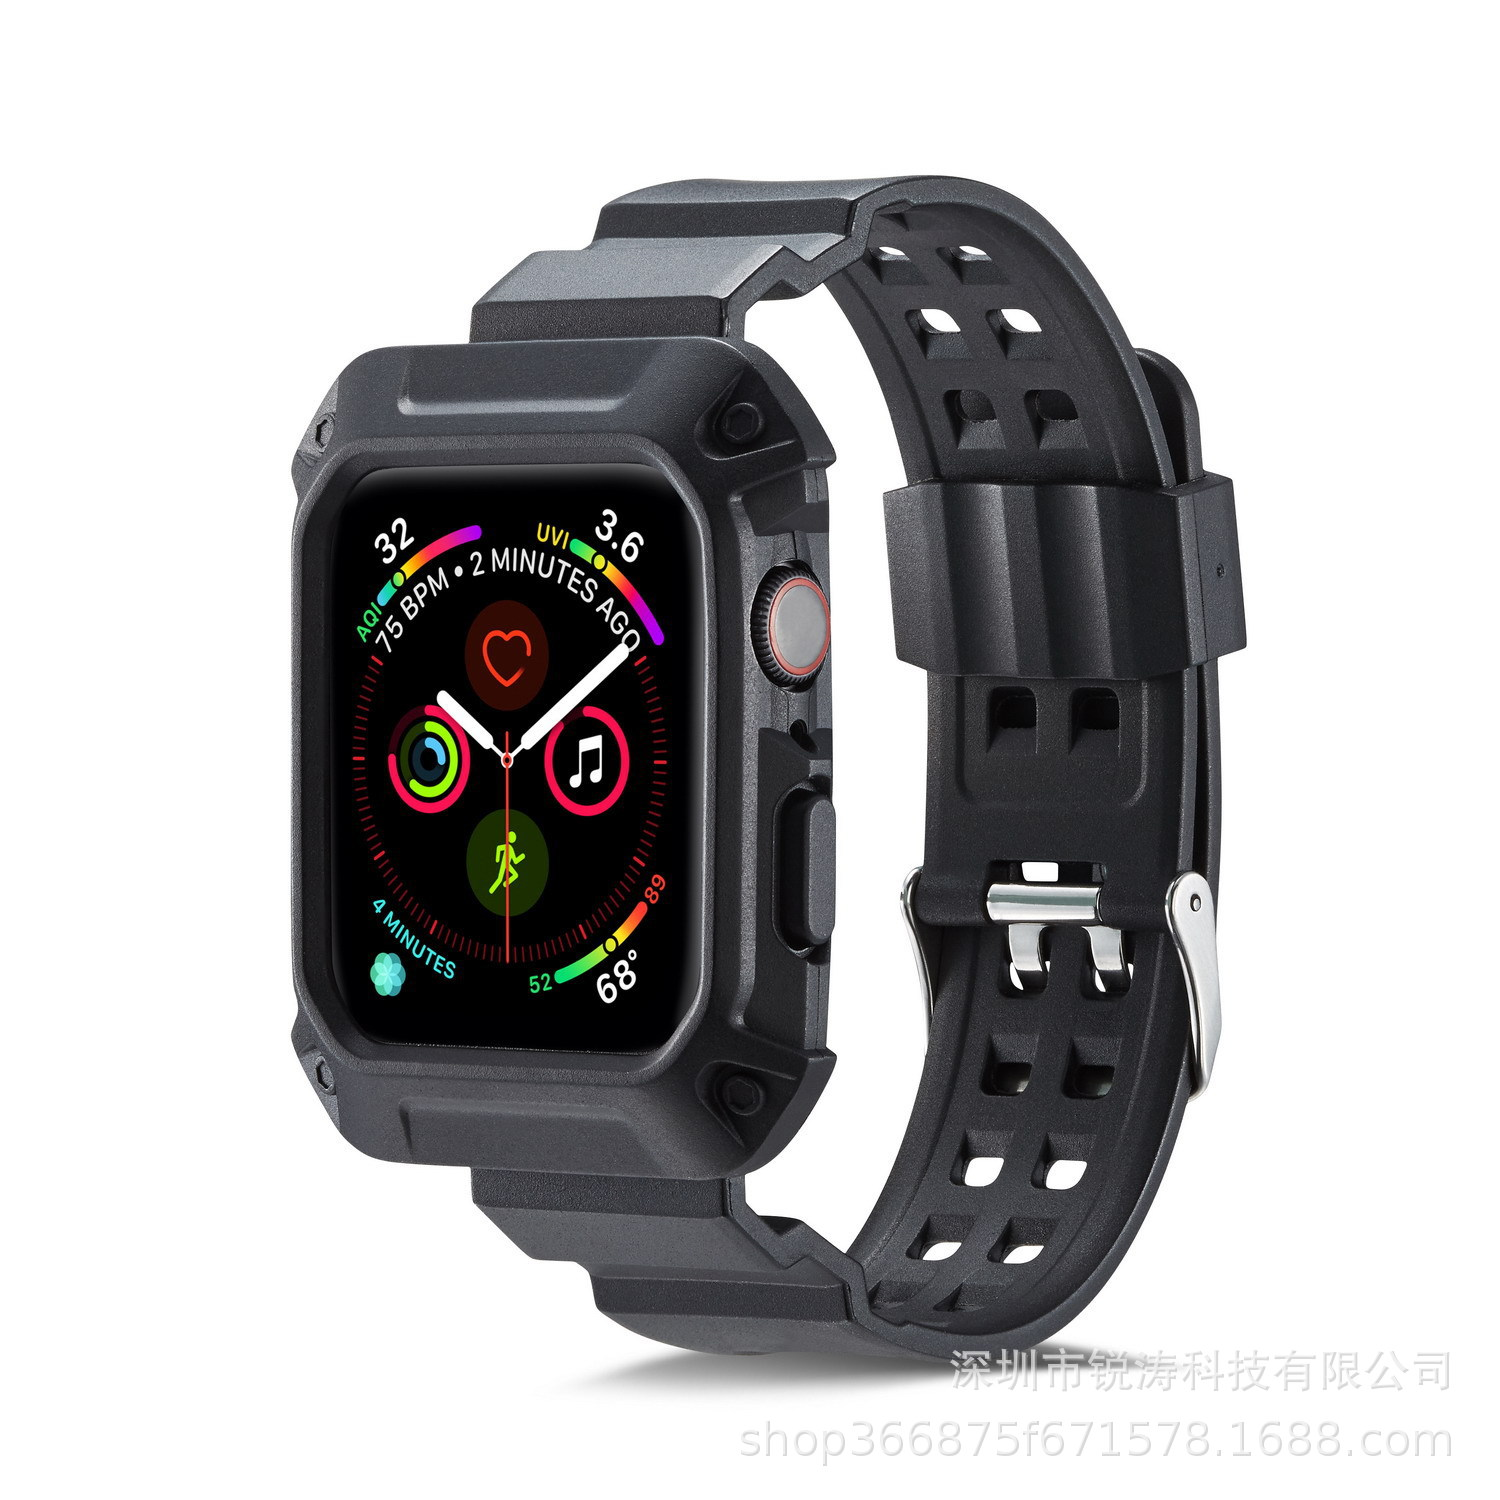 Applicable APPLE Watch4 One-piece TPU Watch Strap 40 Mm Silica Gel One-piece Shatter-resistant Sports 44 Size Armor Watch Strap